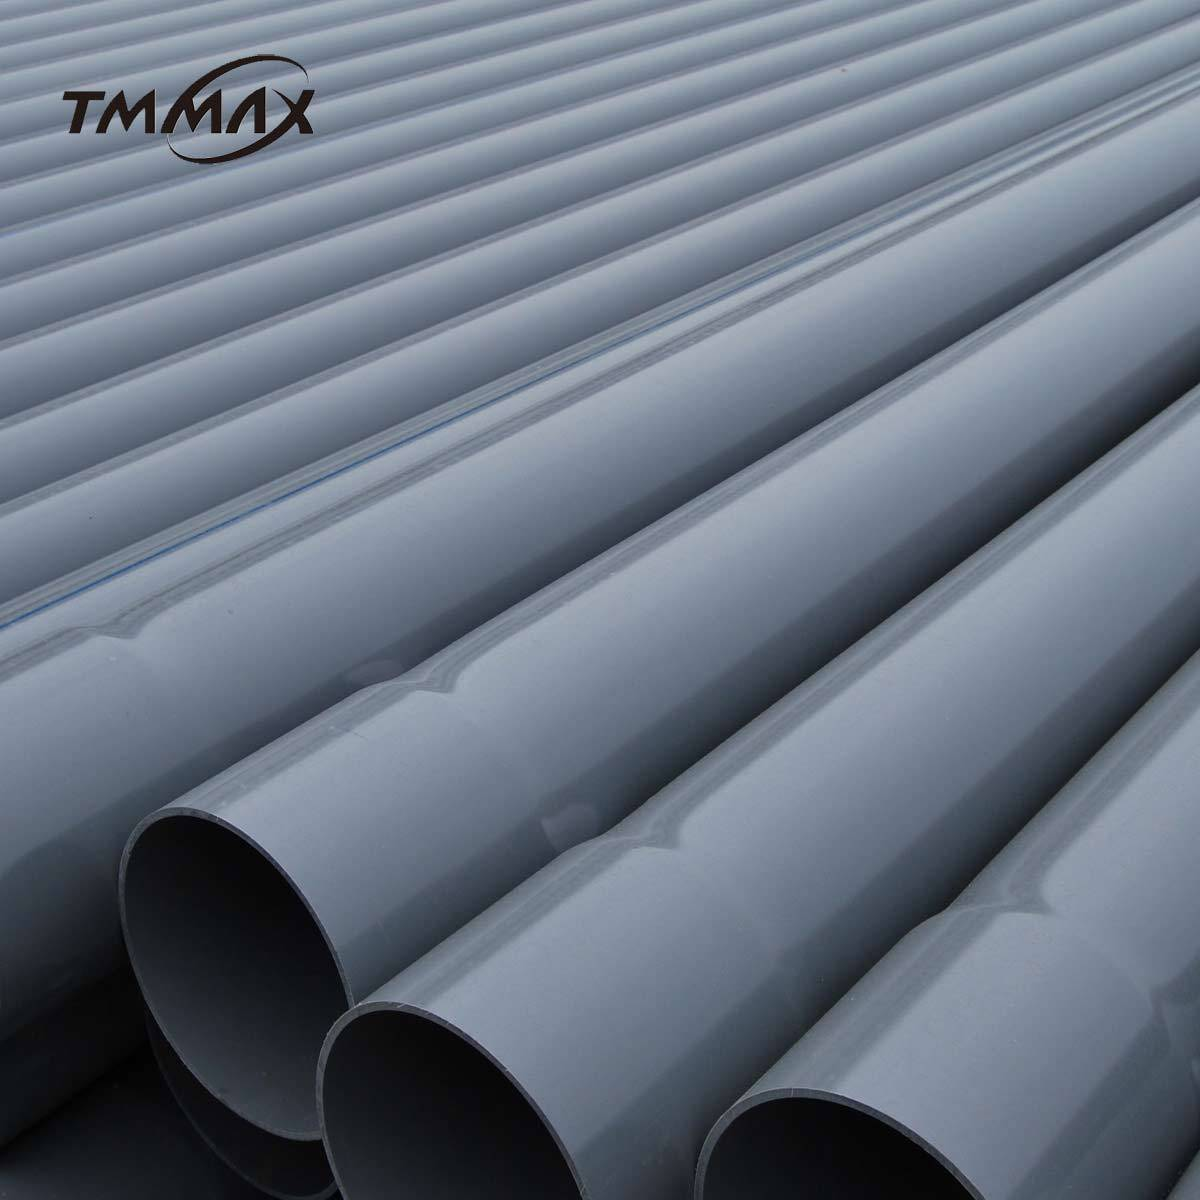 Pvc Pipe,upvc Pipe Manufacturer, Supplier & Exporter